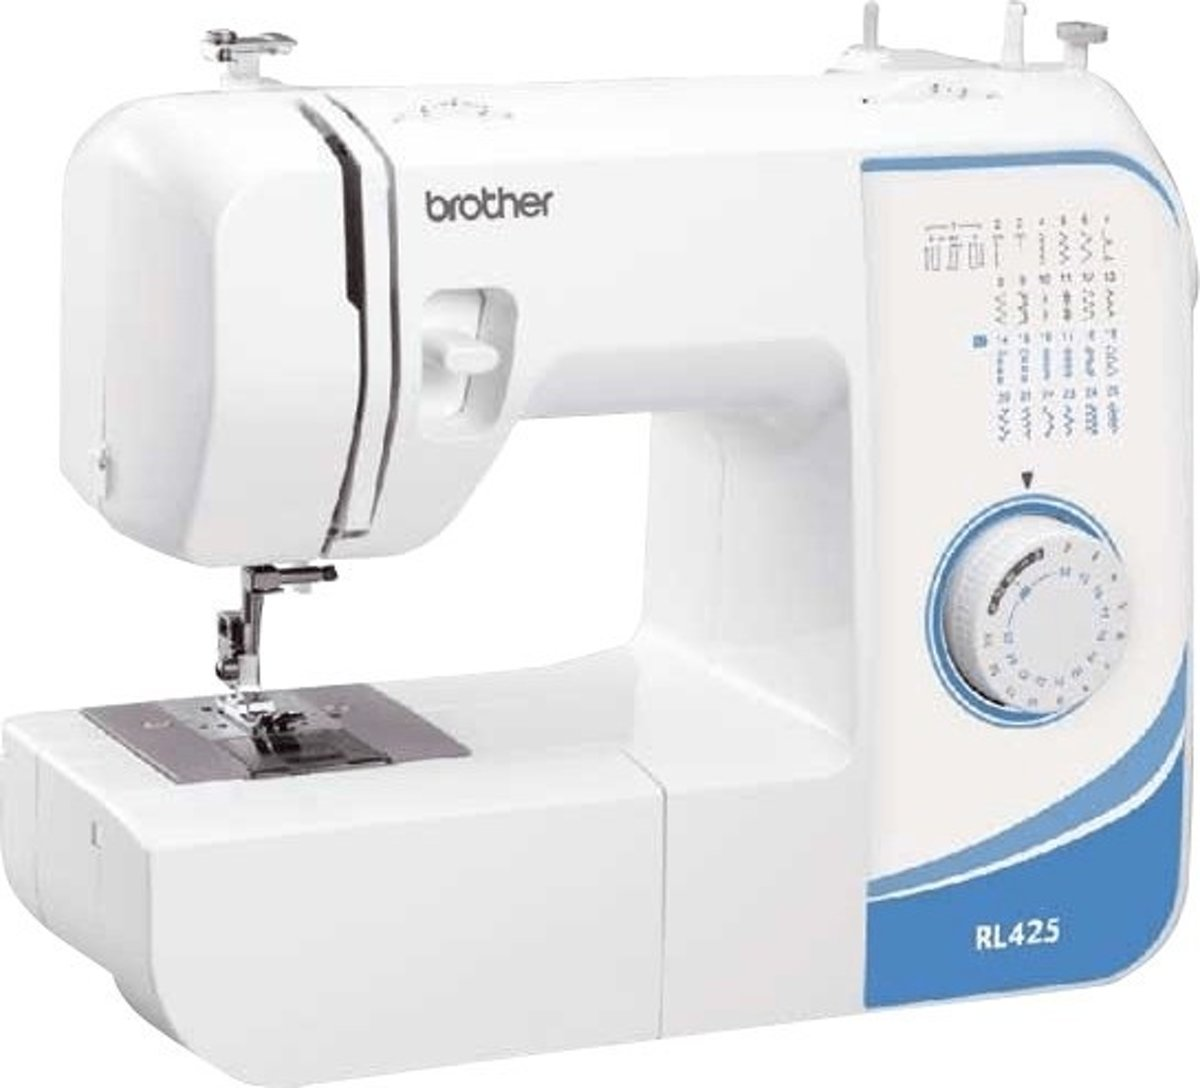 Brother RL425 Naaimachine